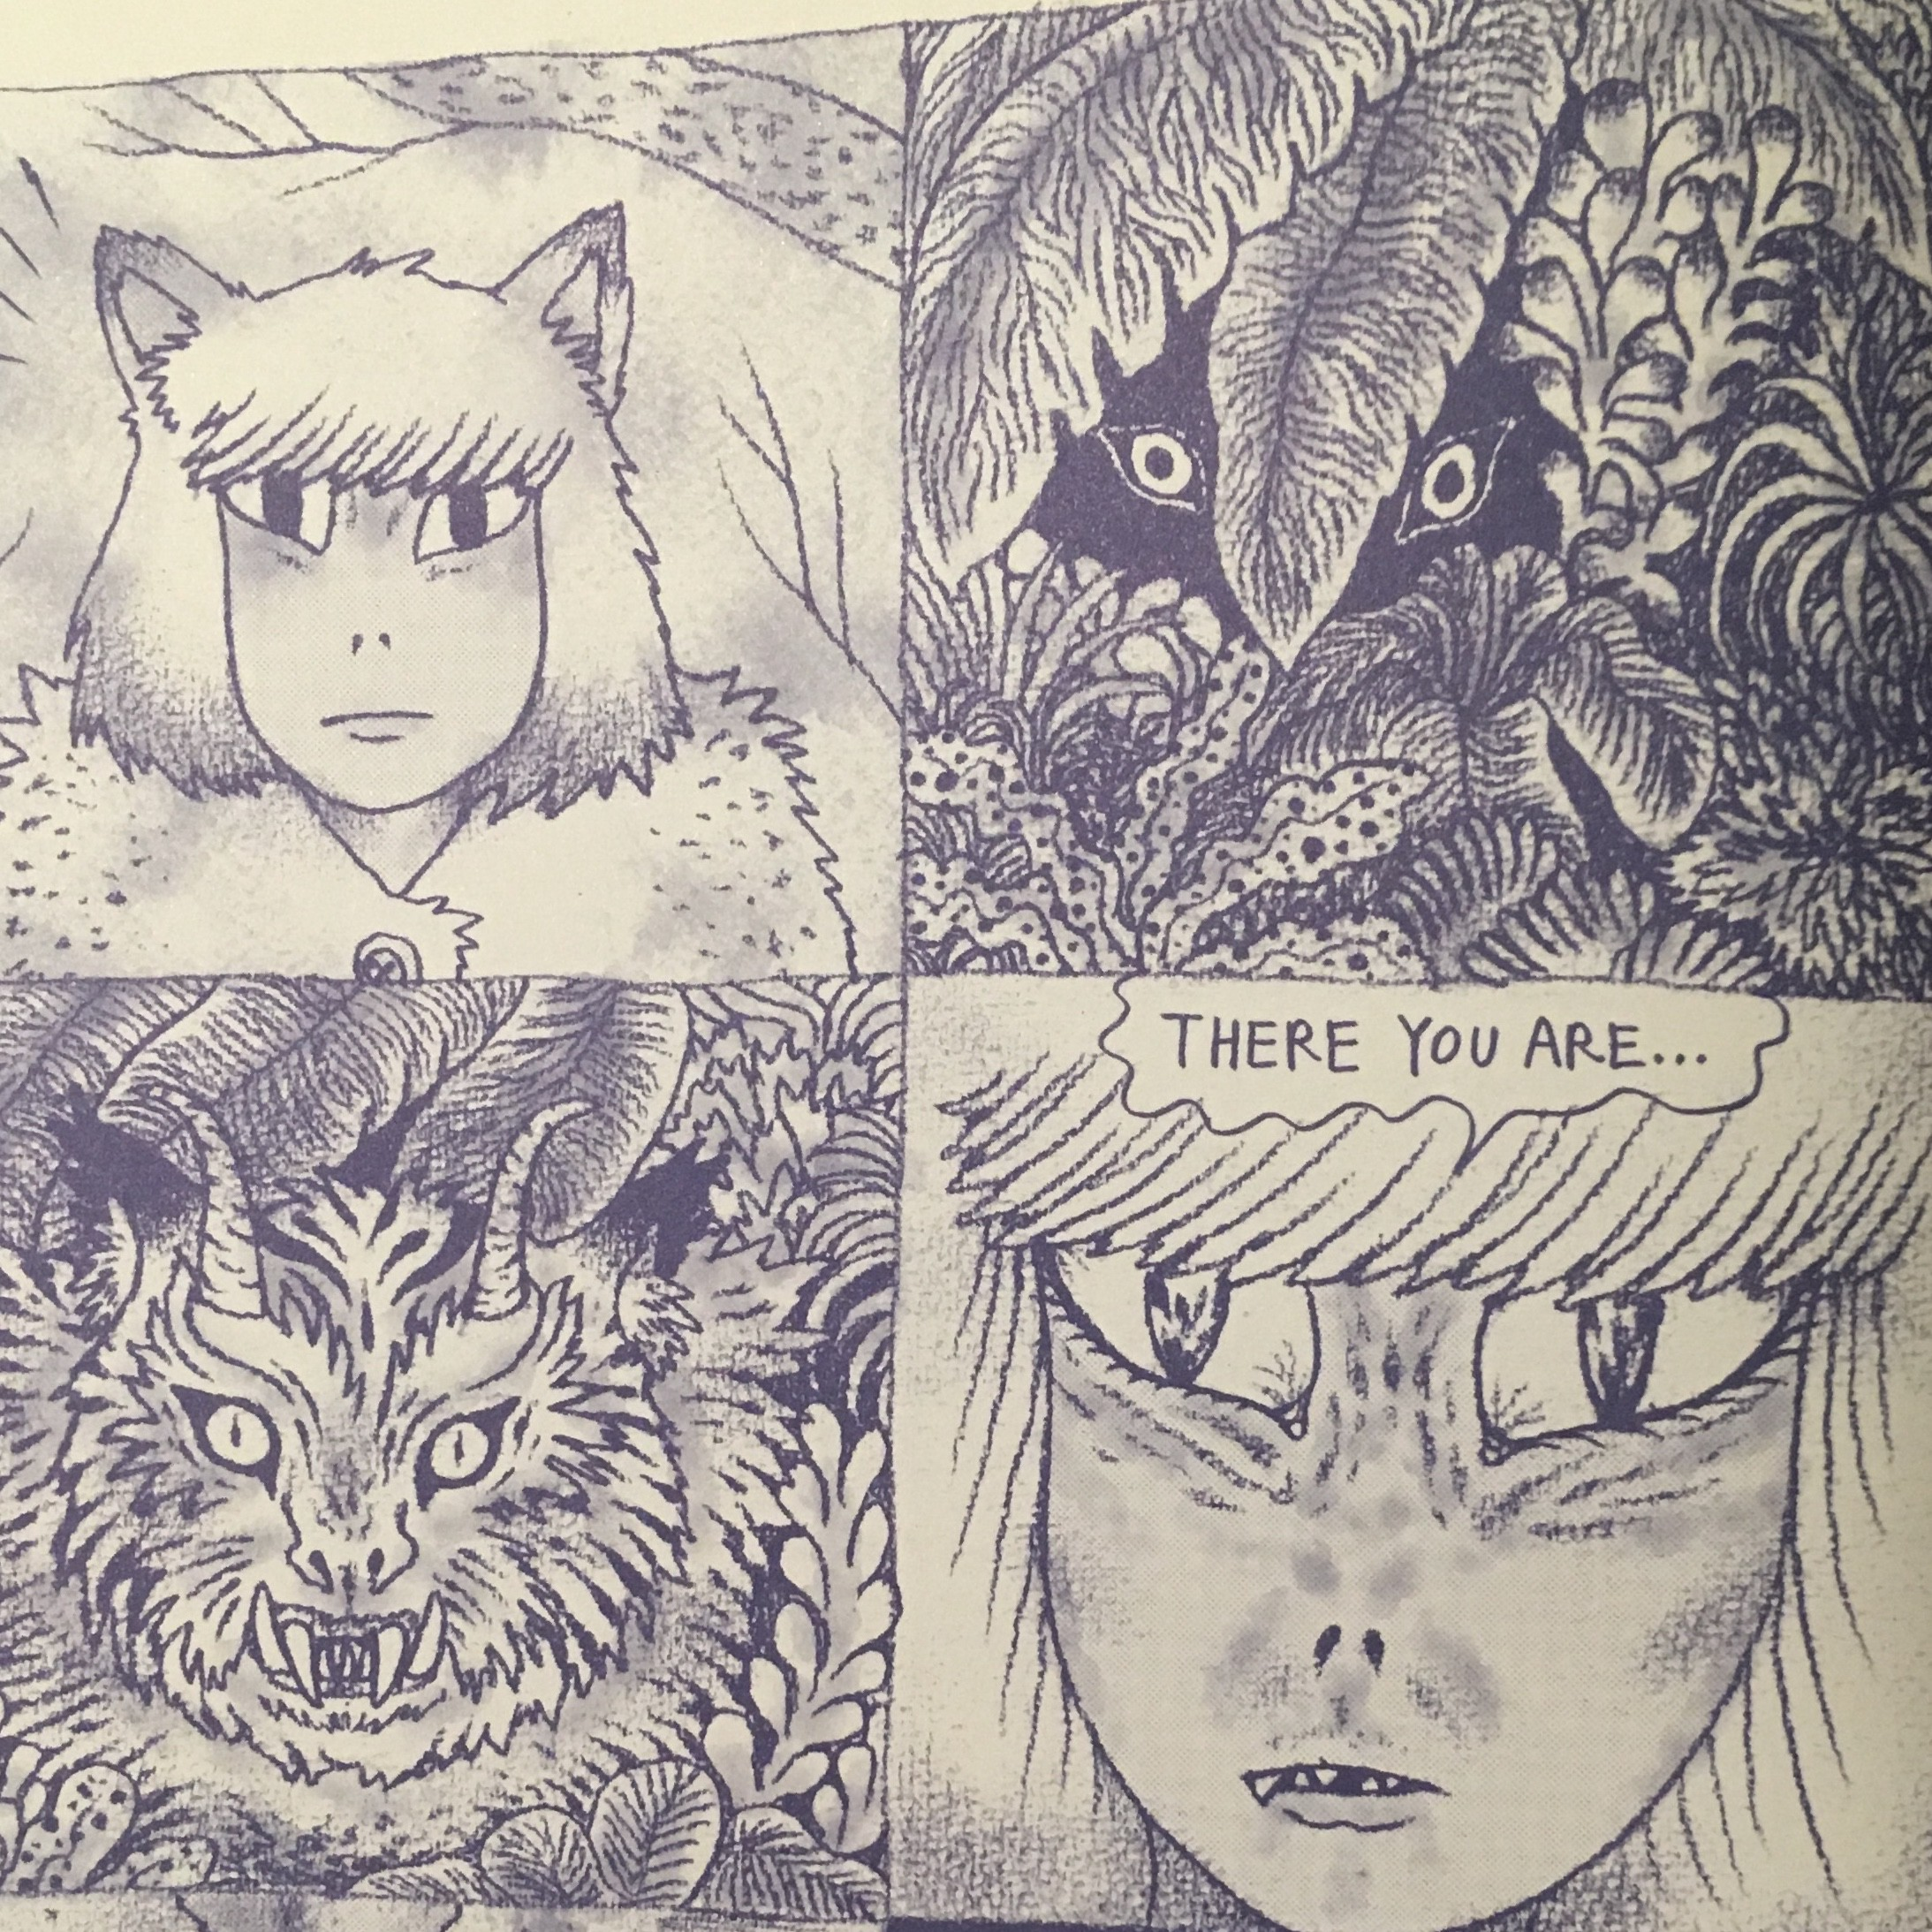 Four panels depicting a woman in a hunter's fur coat and feline ears staring down a surreal not-quite-tiger in the foliage.